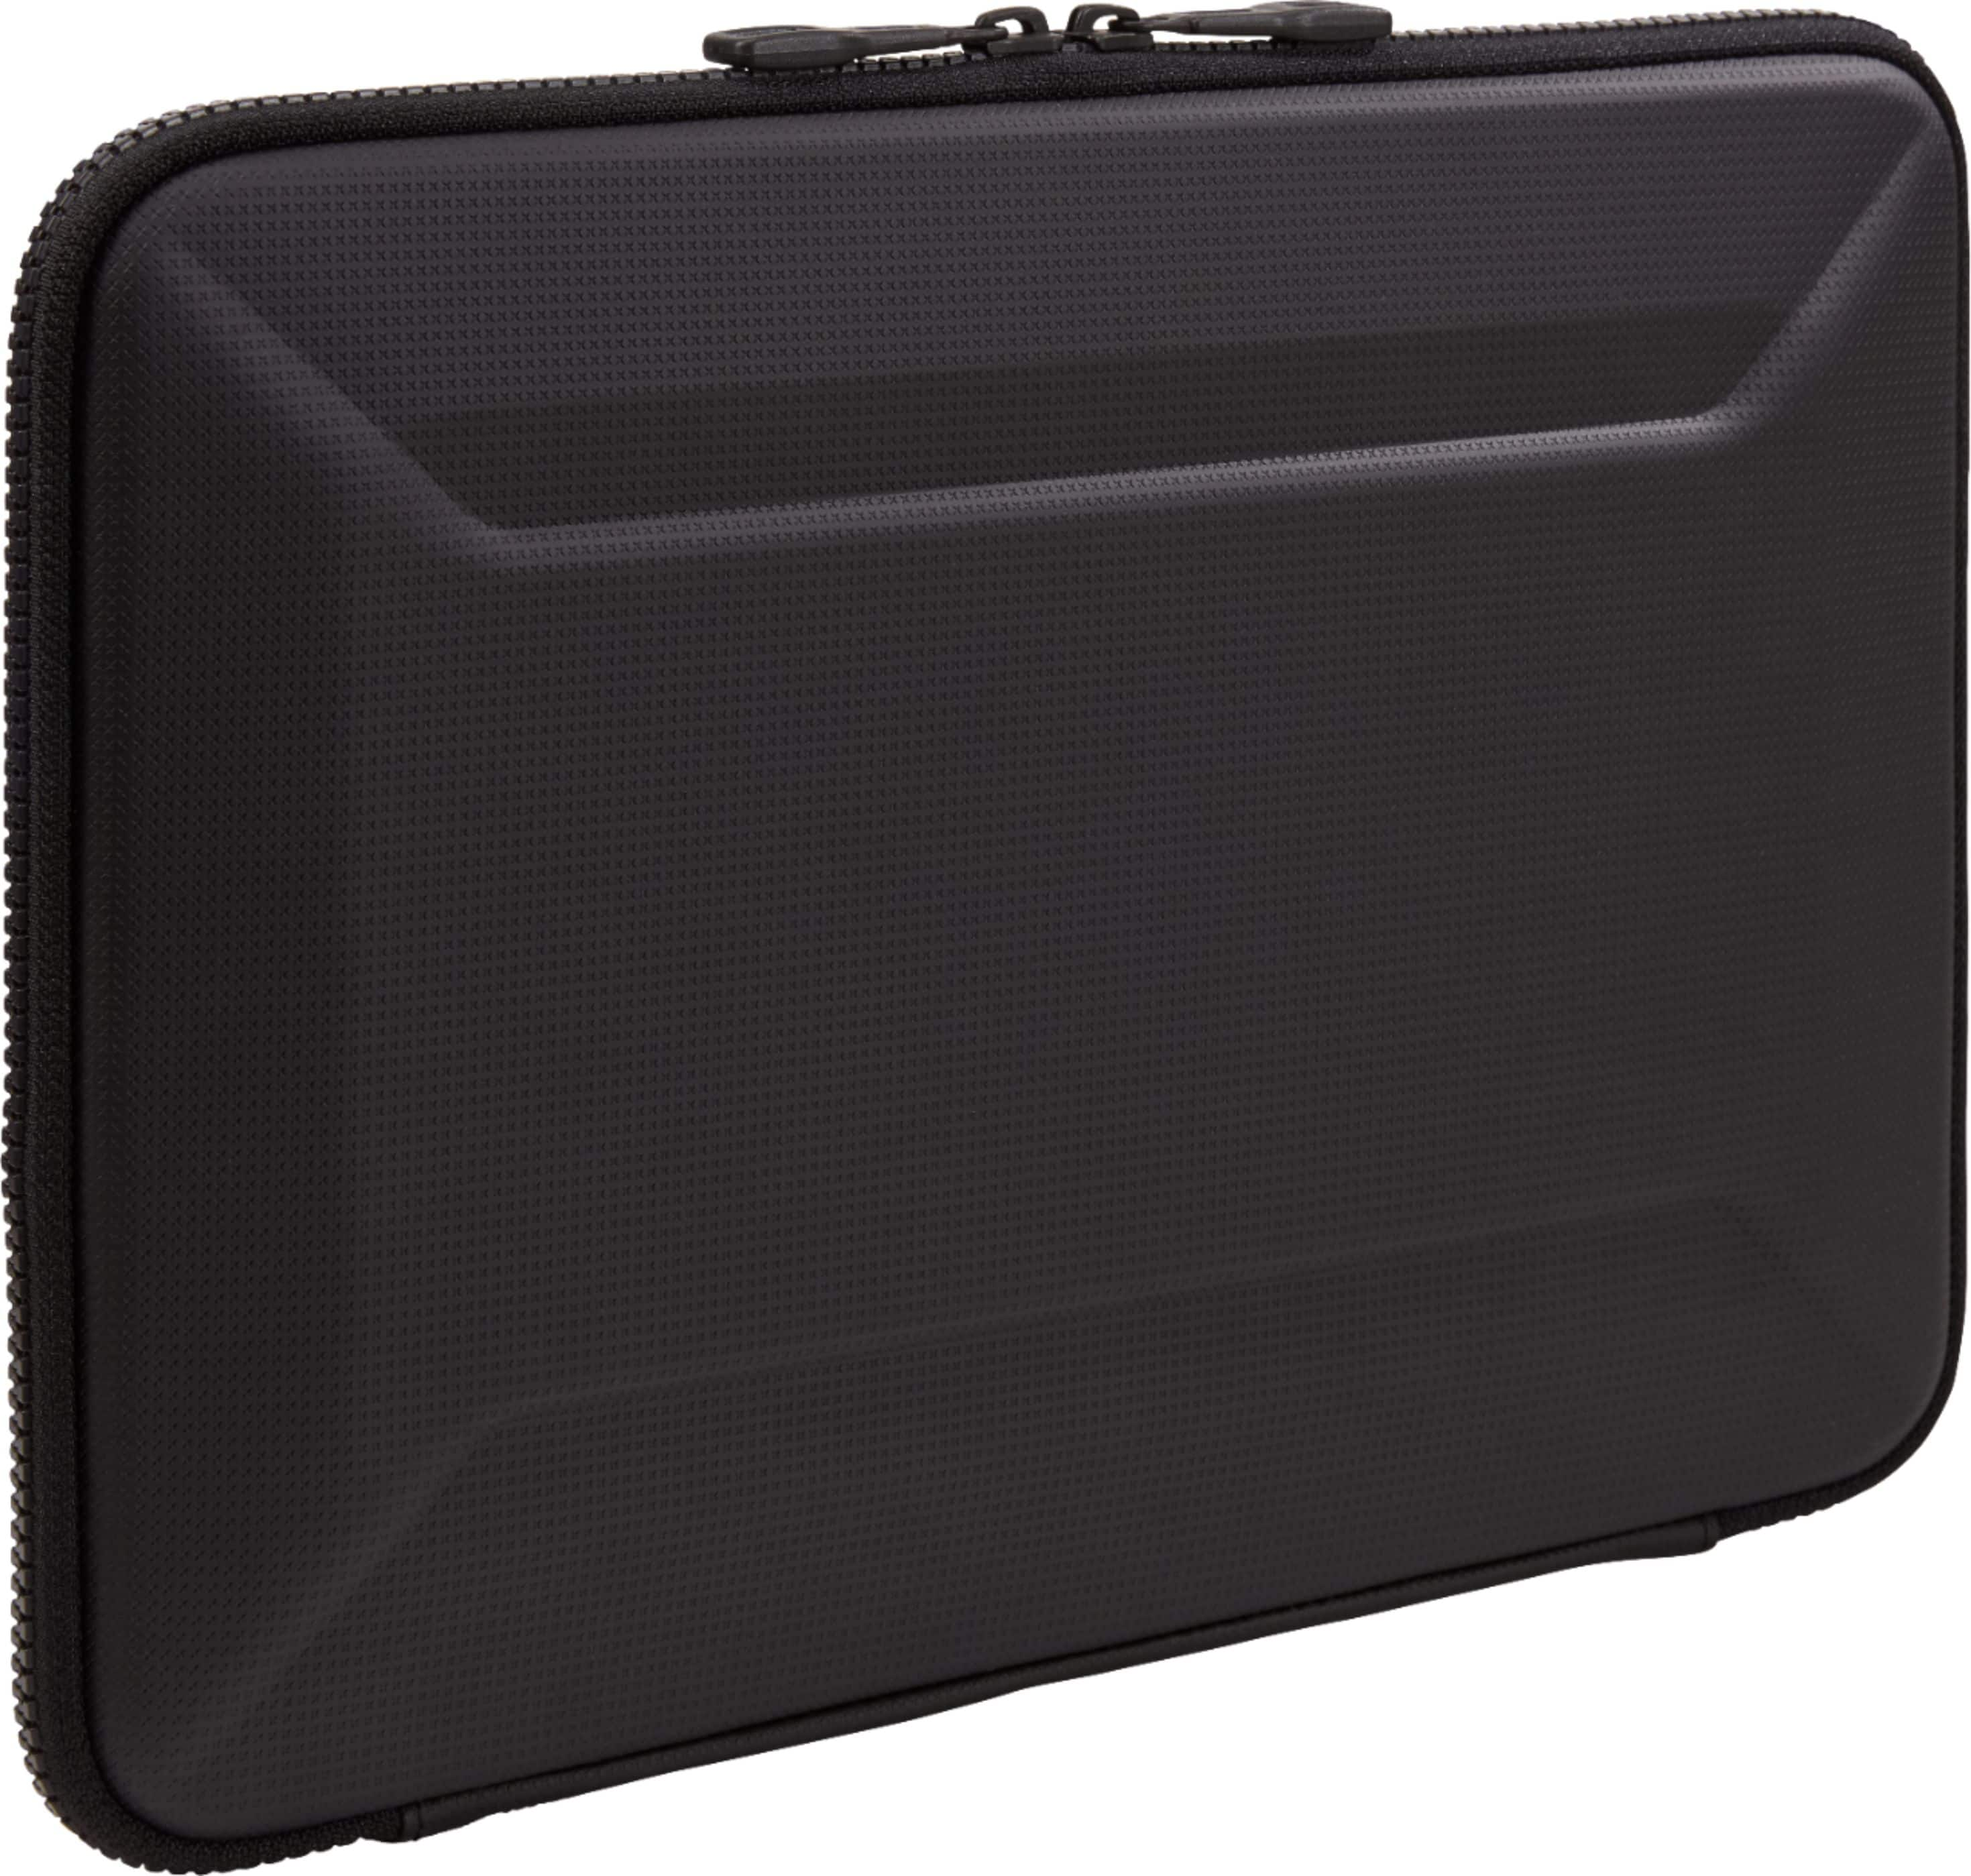 Thule Gauntlet 4 0 Sleeve For 15 Laptop For 29 95